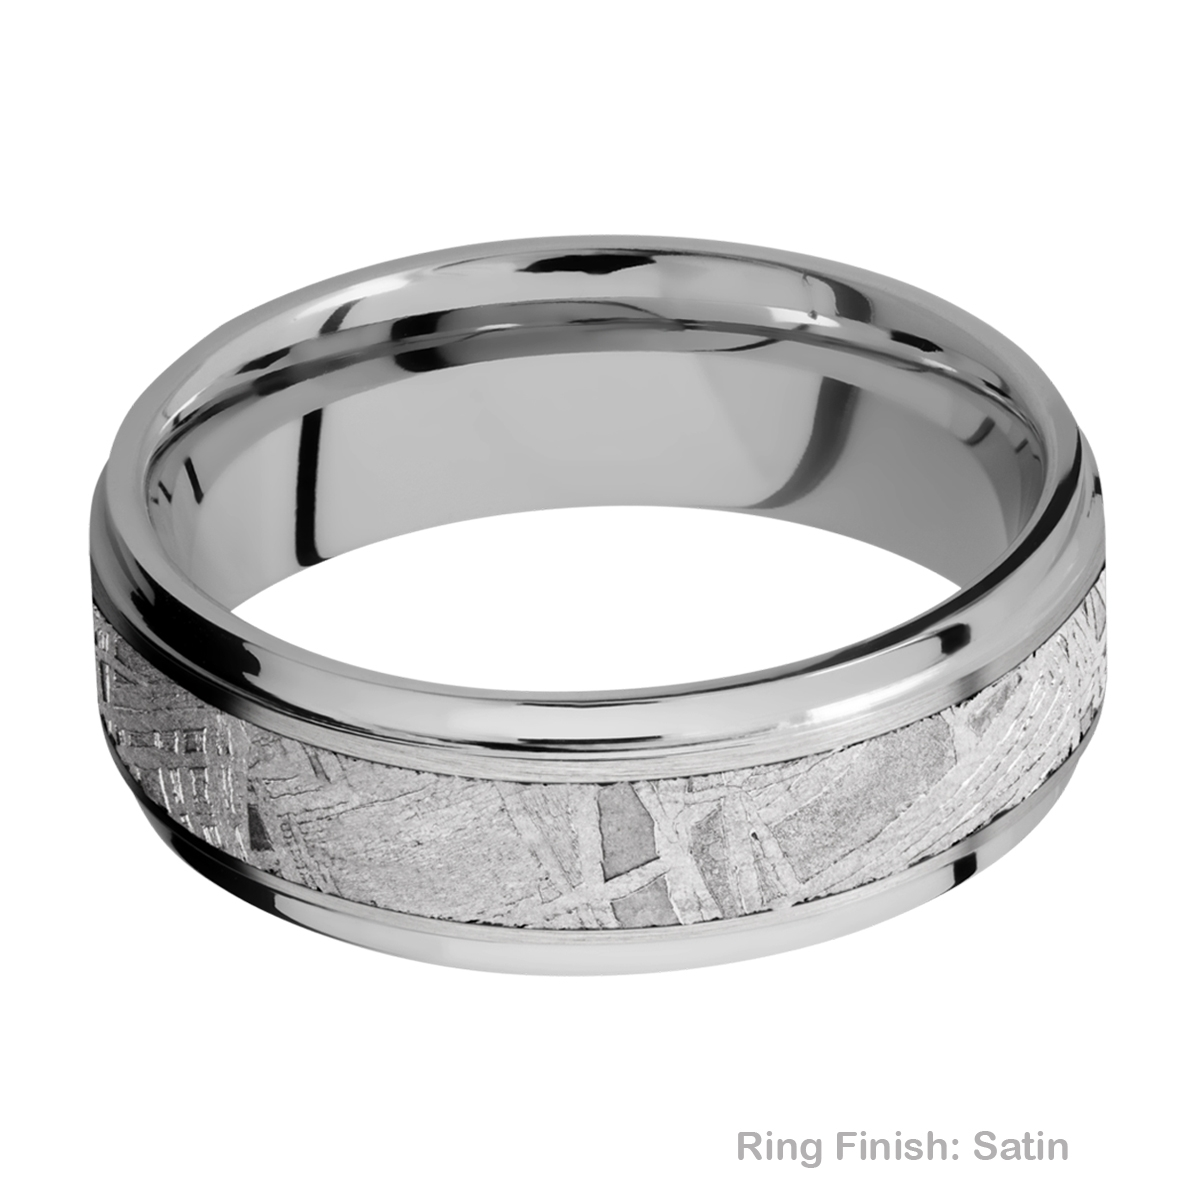 Lashbrook 7FGE14/METEORITE Titanium Wedding Ring or Band Alternative View 5